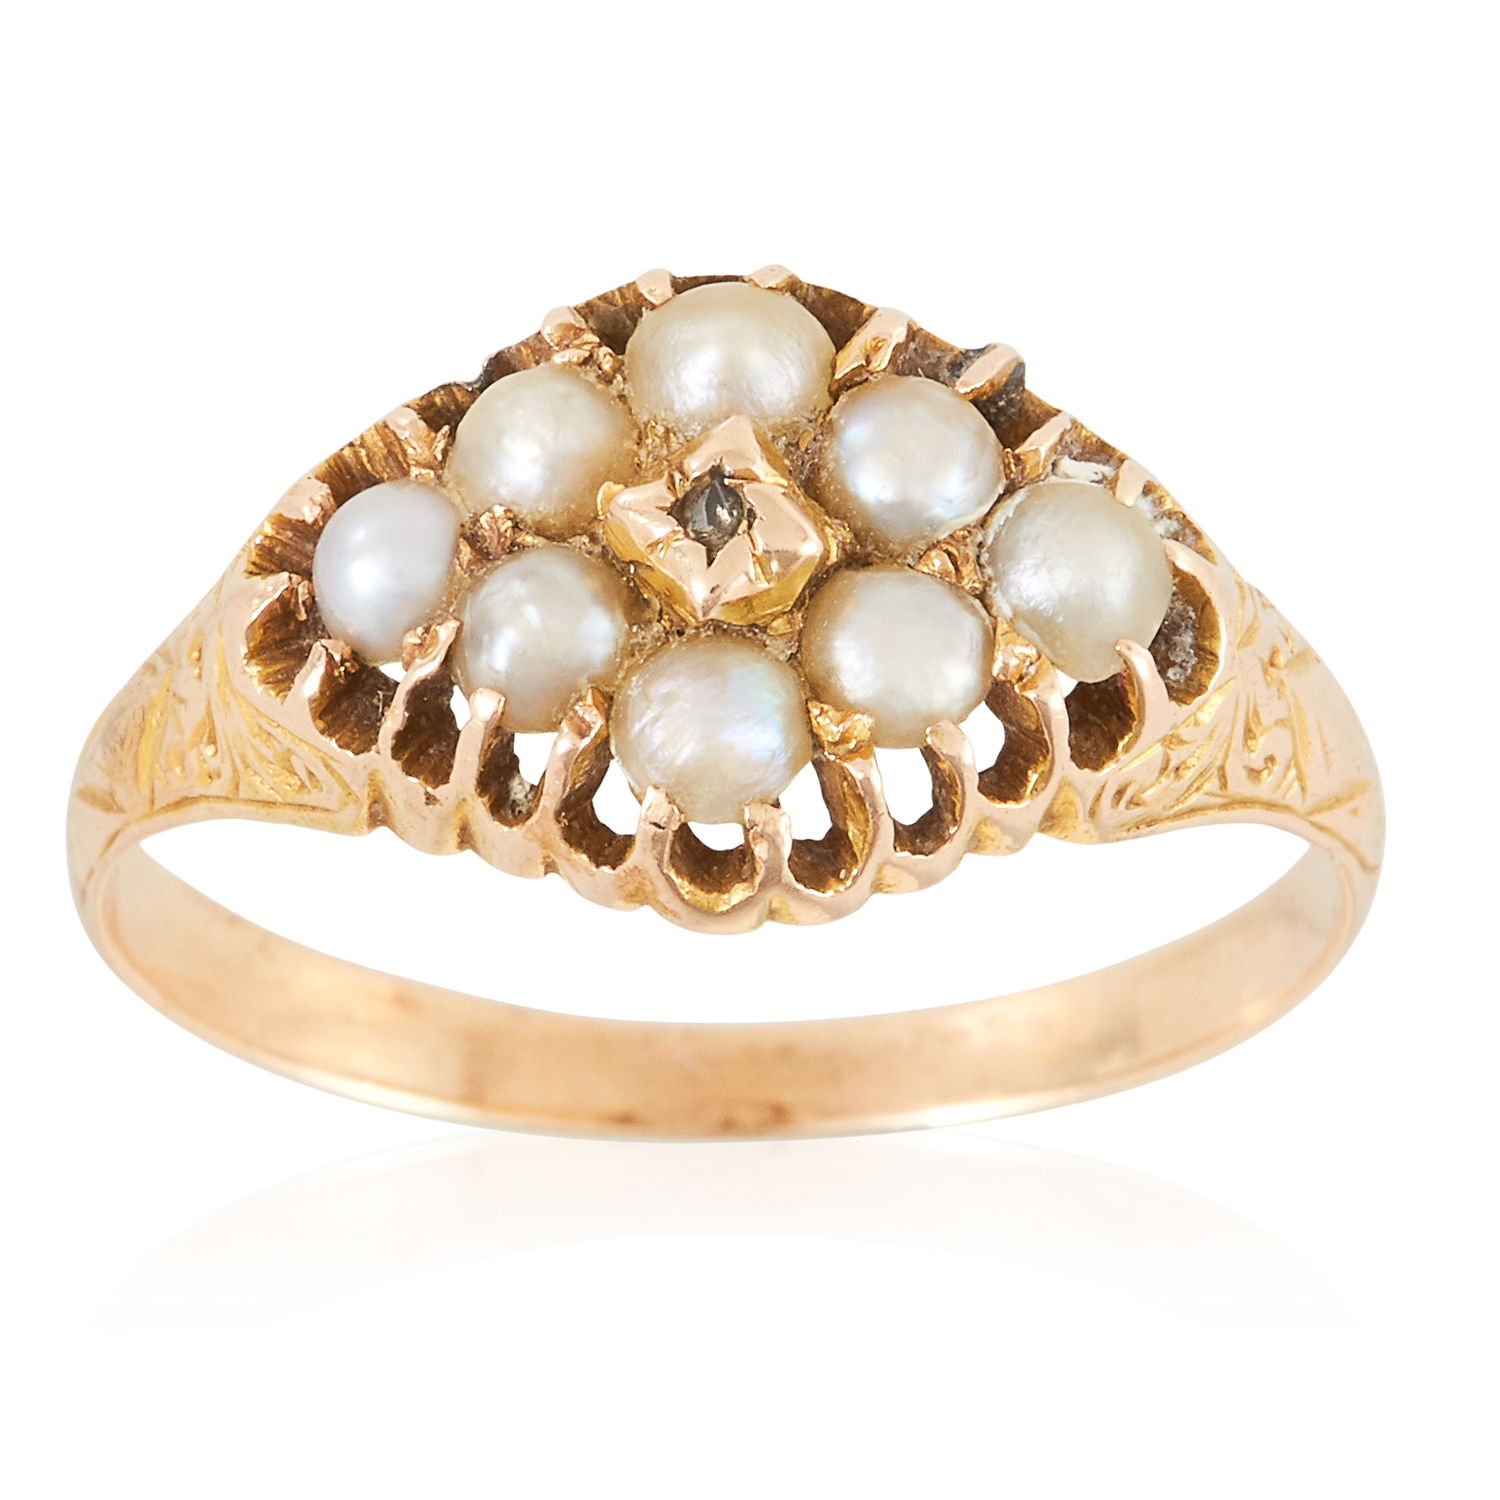 Los 20 - AN ANTIQUE PEARL AND DIAMOND RING in yellow gold, set with eight seed pearls and a rose cut diamond,